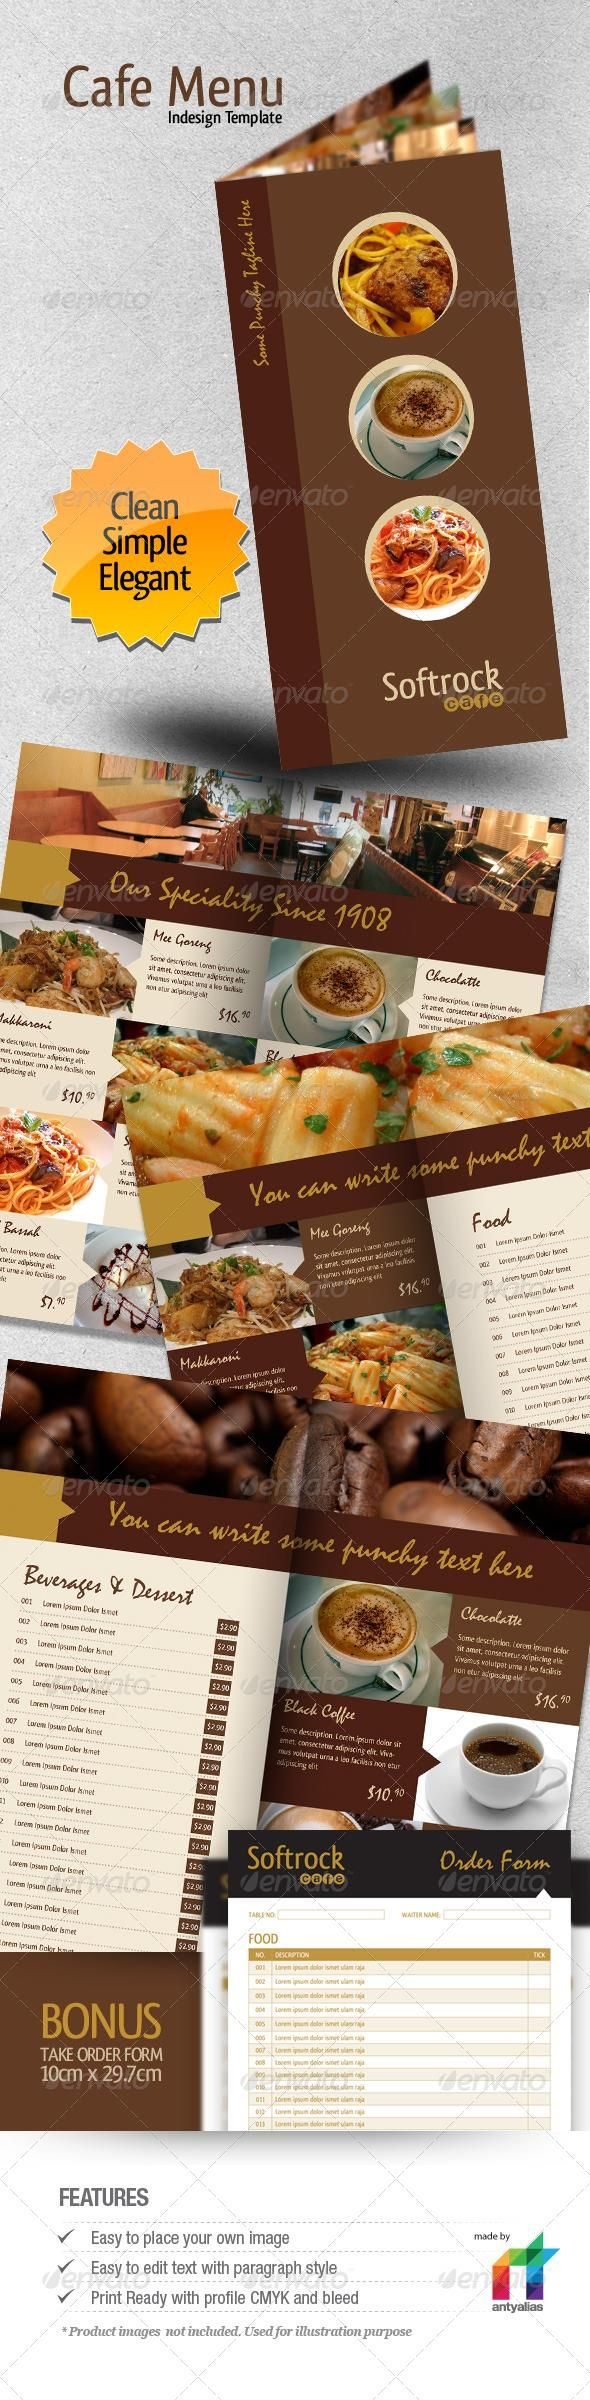 Best Food Menu Templates Images On Pinterest Food Menu - Menu brochure template free